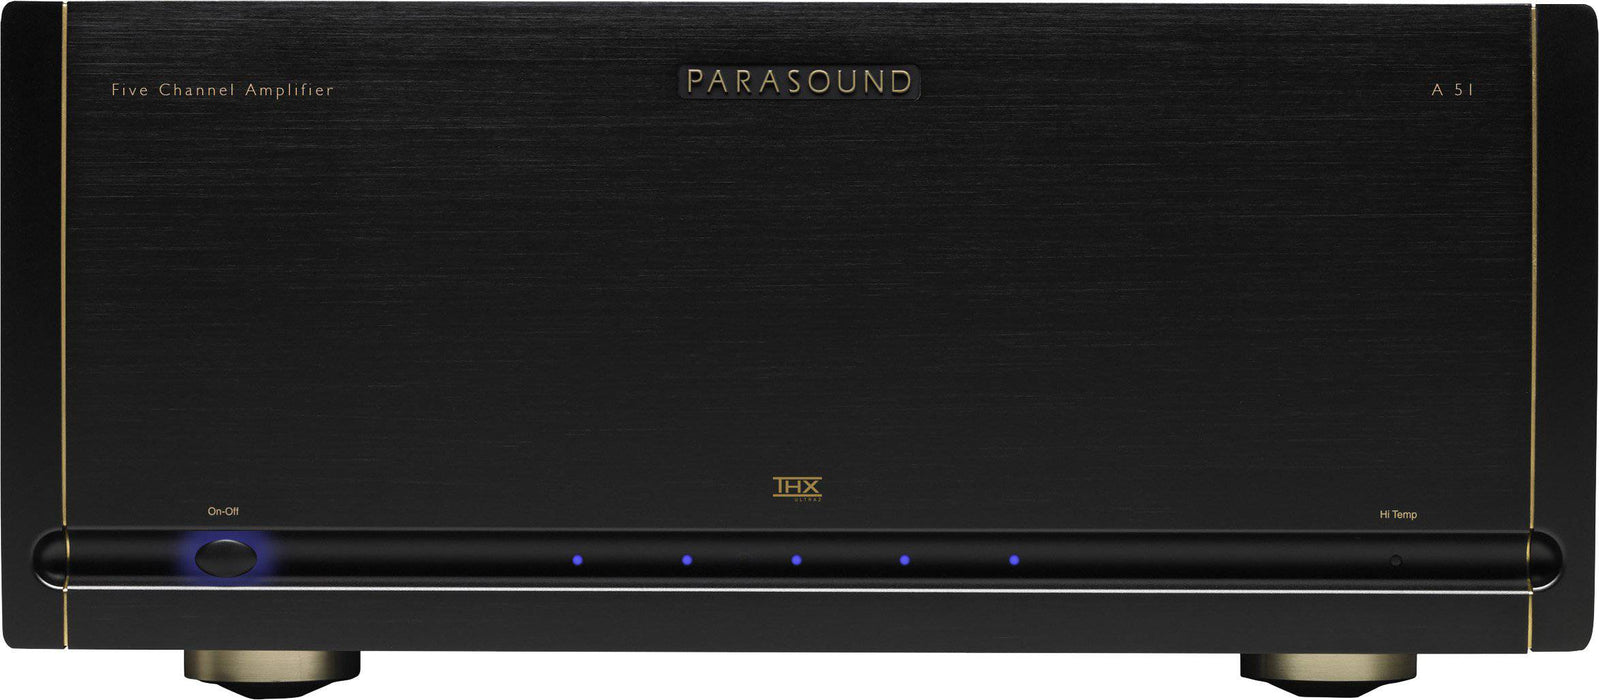 Parasound A51 Halo - Home Theatre Five Channel Power Amplifier - The Audio Company